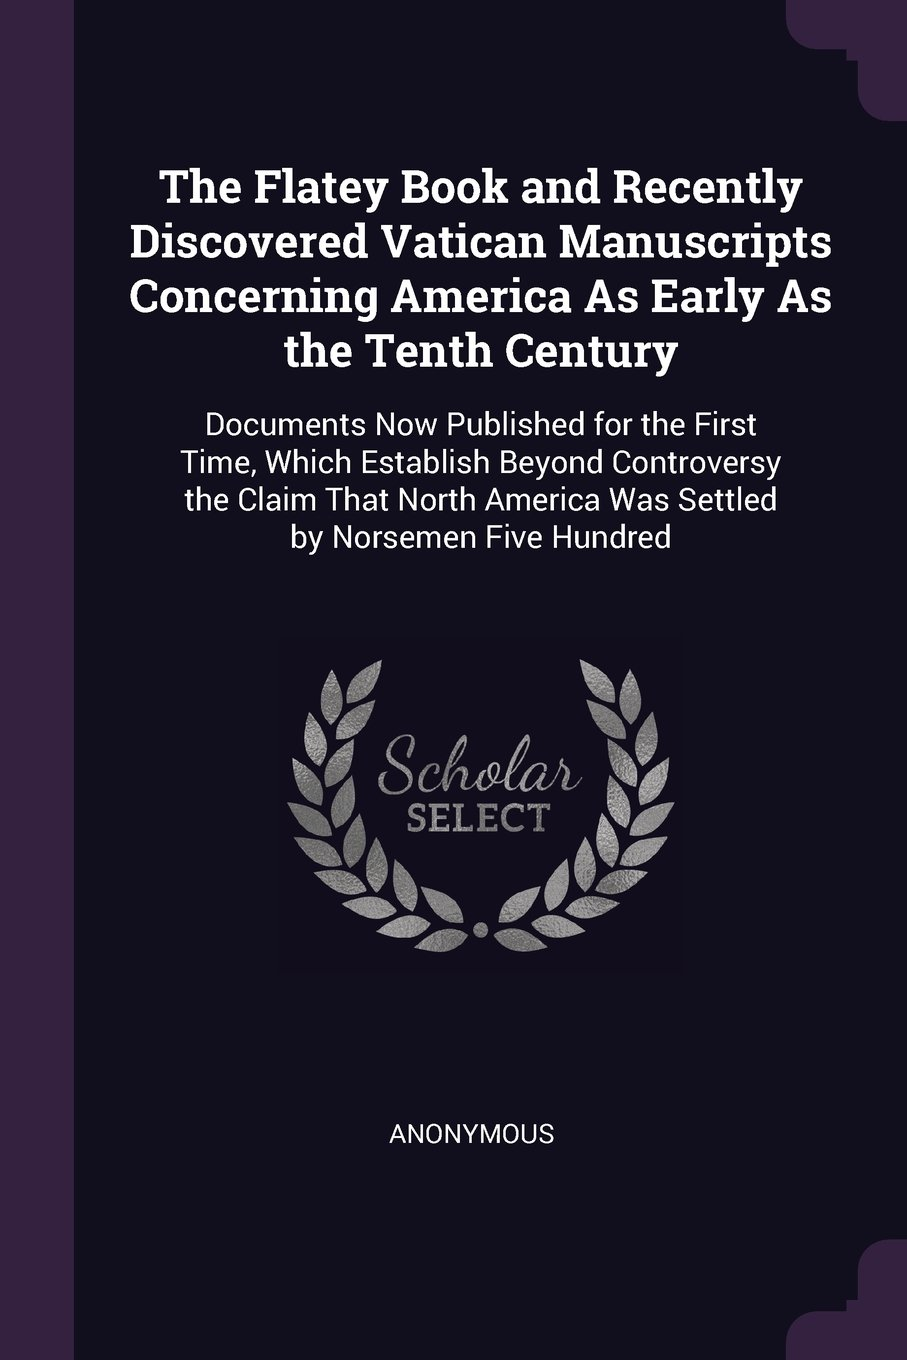 Download The Flatey Book and Recently Discovered Vatican Manuscripts Concerning America As Early As the Tenth Century: Documents Now Published for the First ... America Was Settled by Norsemen Five Hundred pdf epub